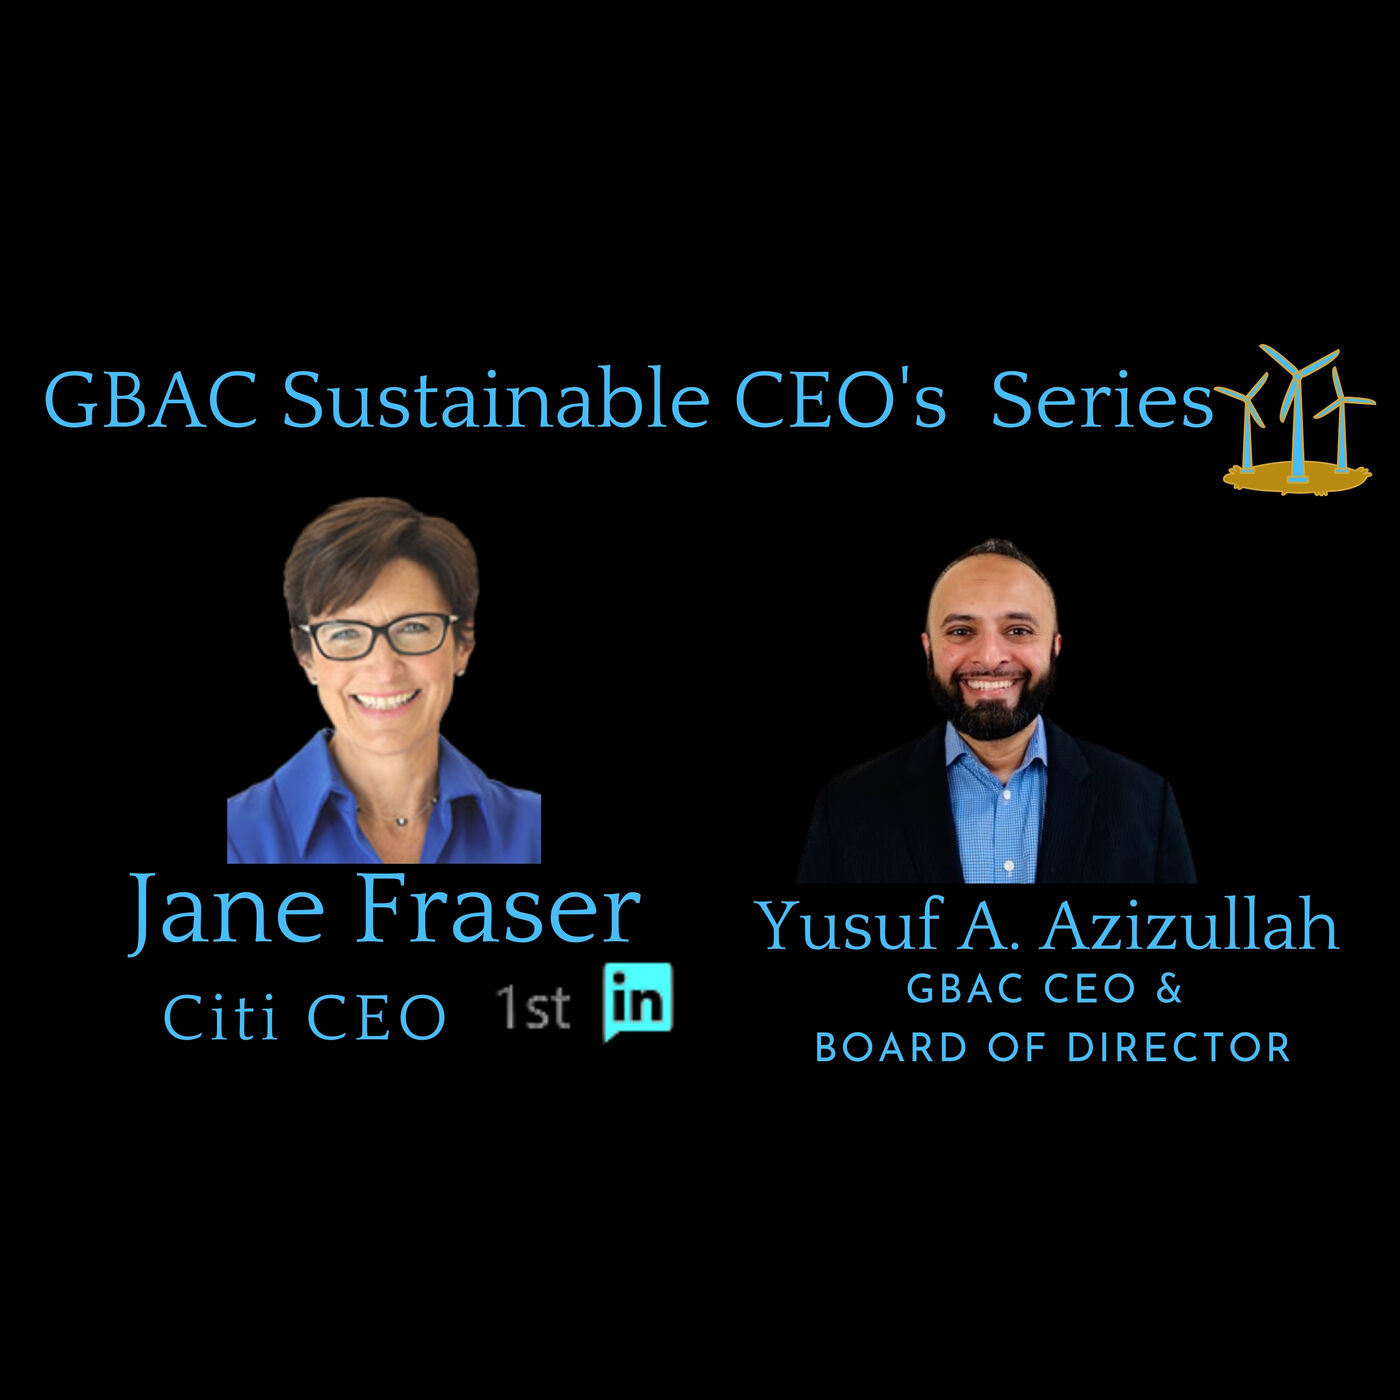 Jane Fraser Citi CEO, my Network GBAC Sustainable CEO Series